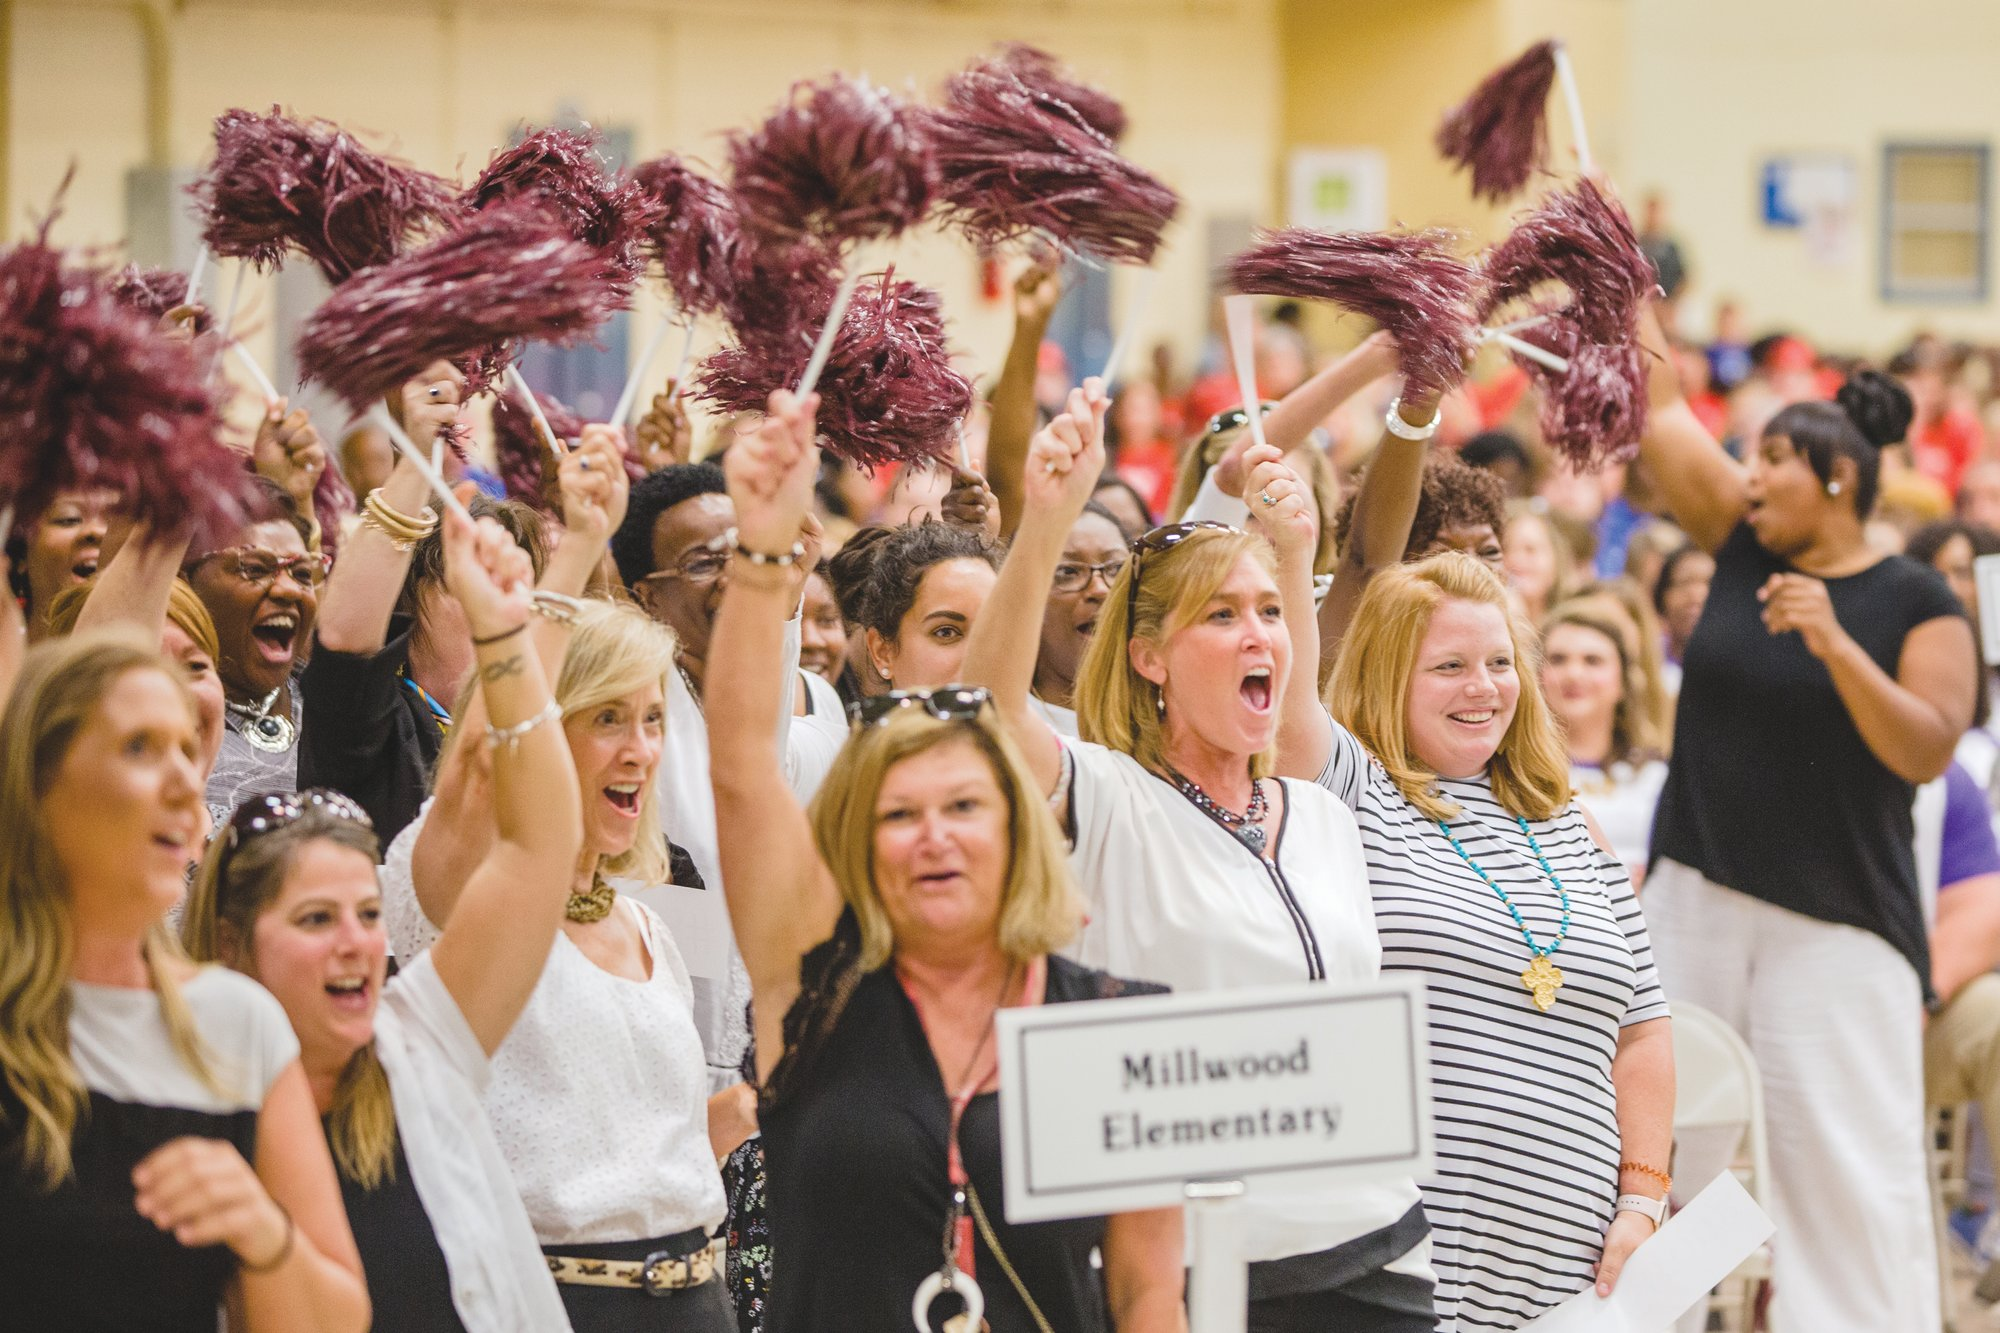 Millwood Elementary celebrates when the school's name is called during the annual Sumter School District opening meeting at Sumter County Civic Center on Friday afternoon.